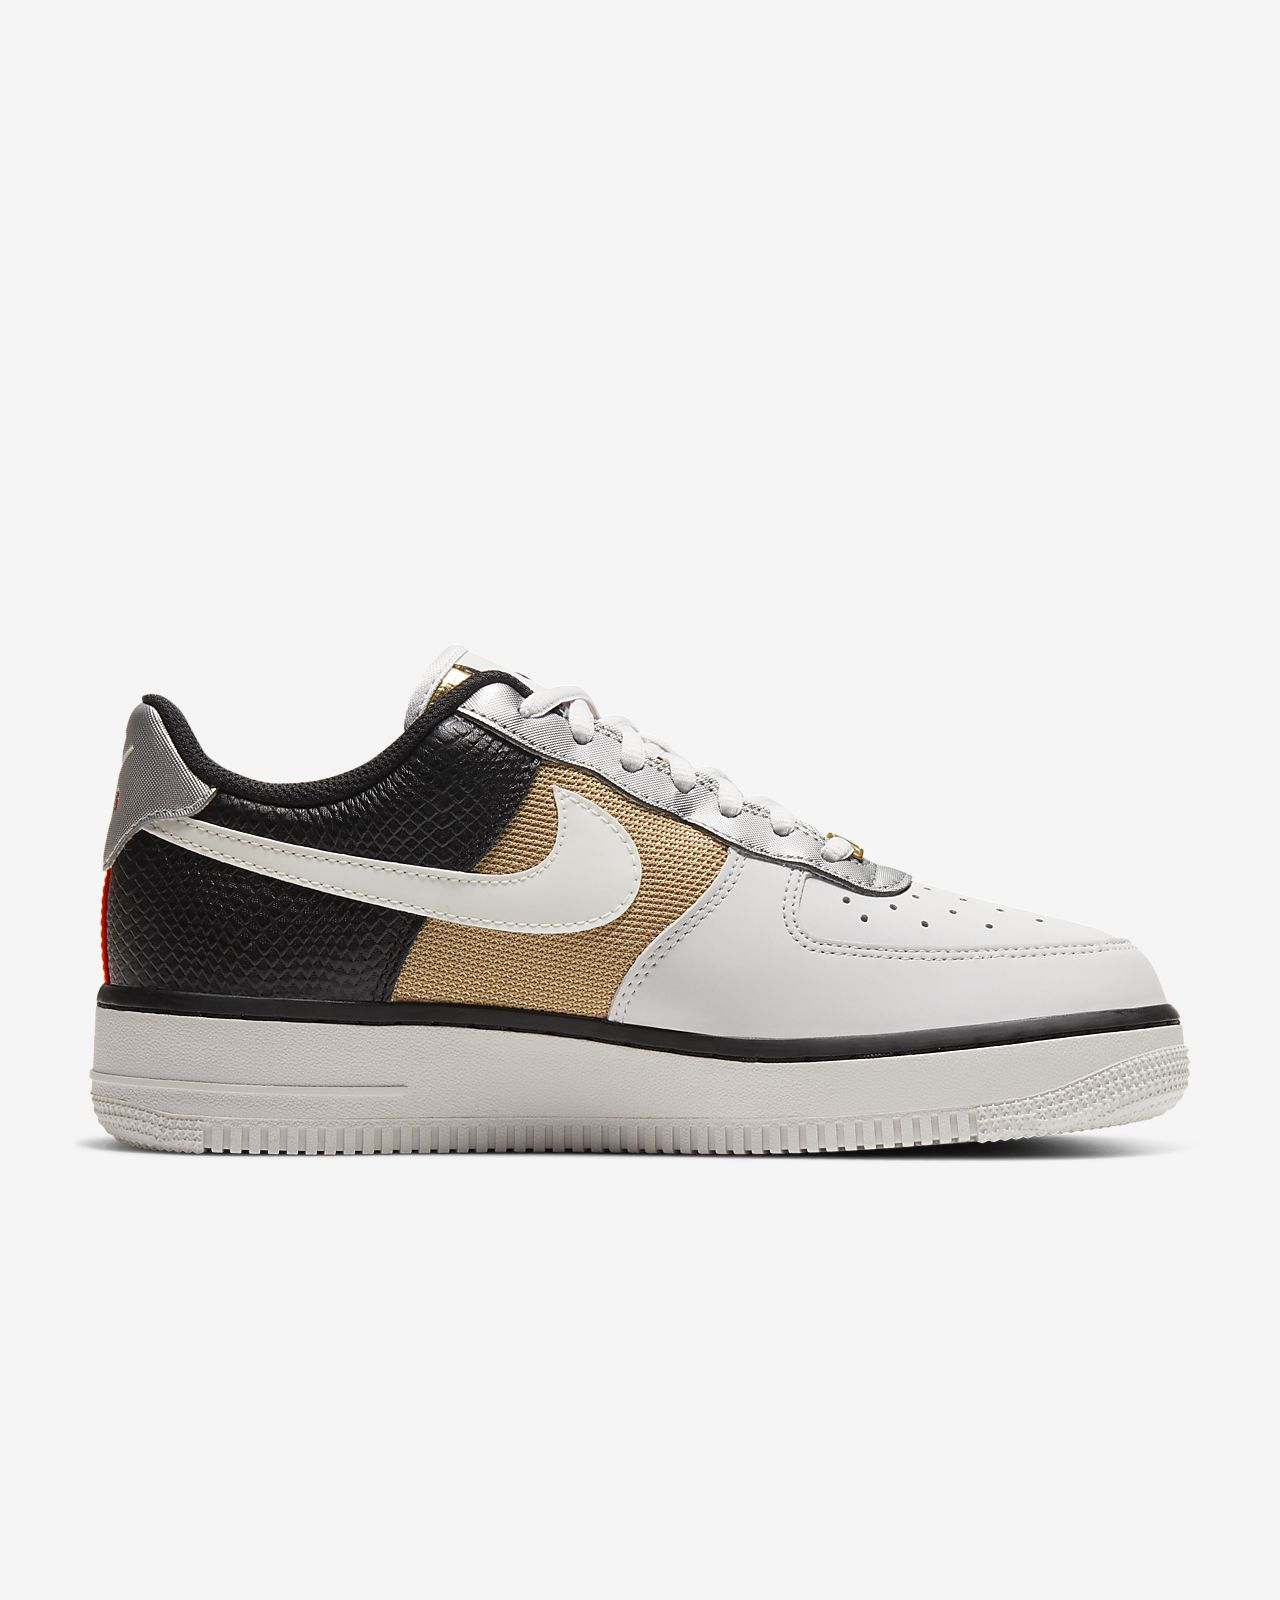 Nike Air Force 1 '07 Vast Grey Metallic Gold Shoes